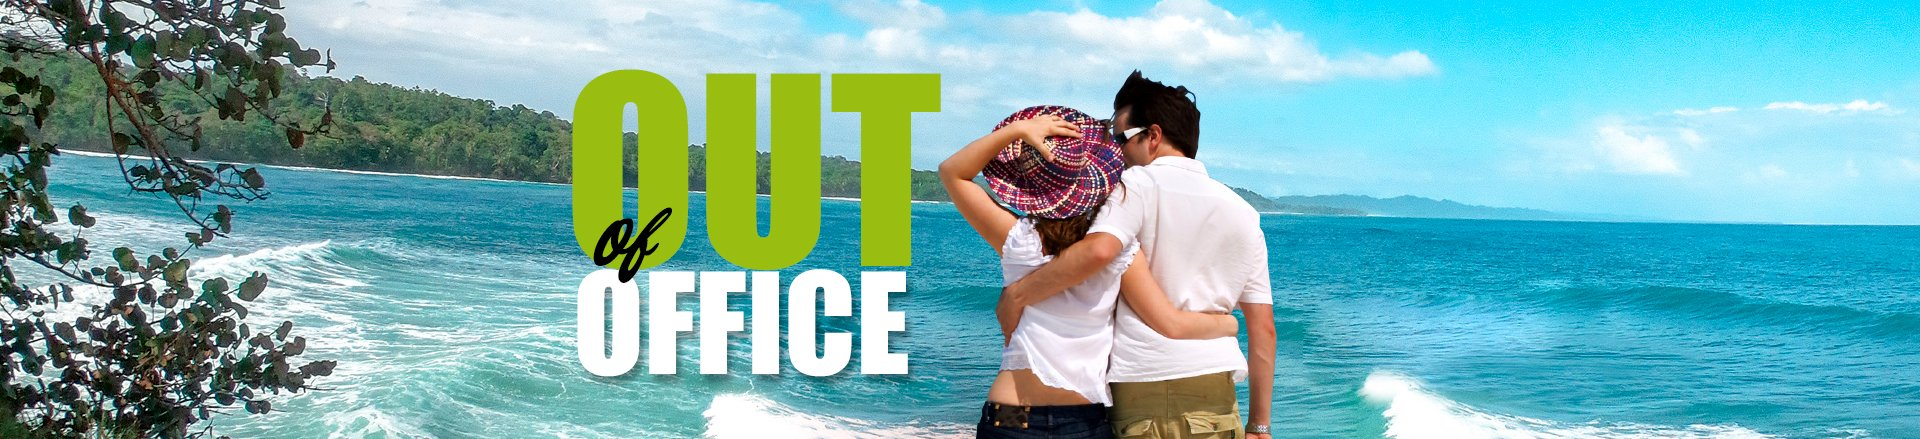 Banner Out of Office 2 - Travel Agency Partnerships